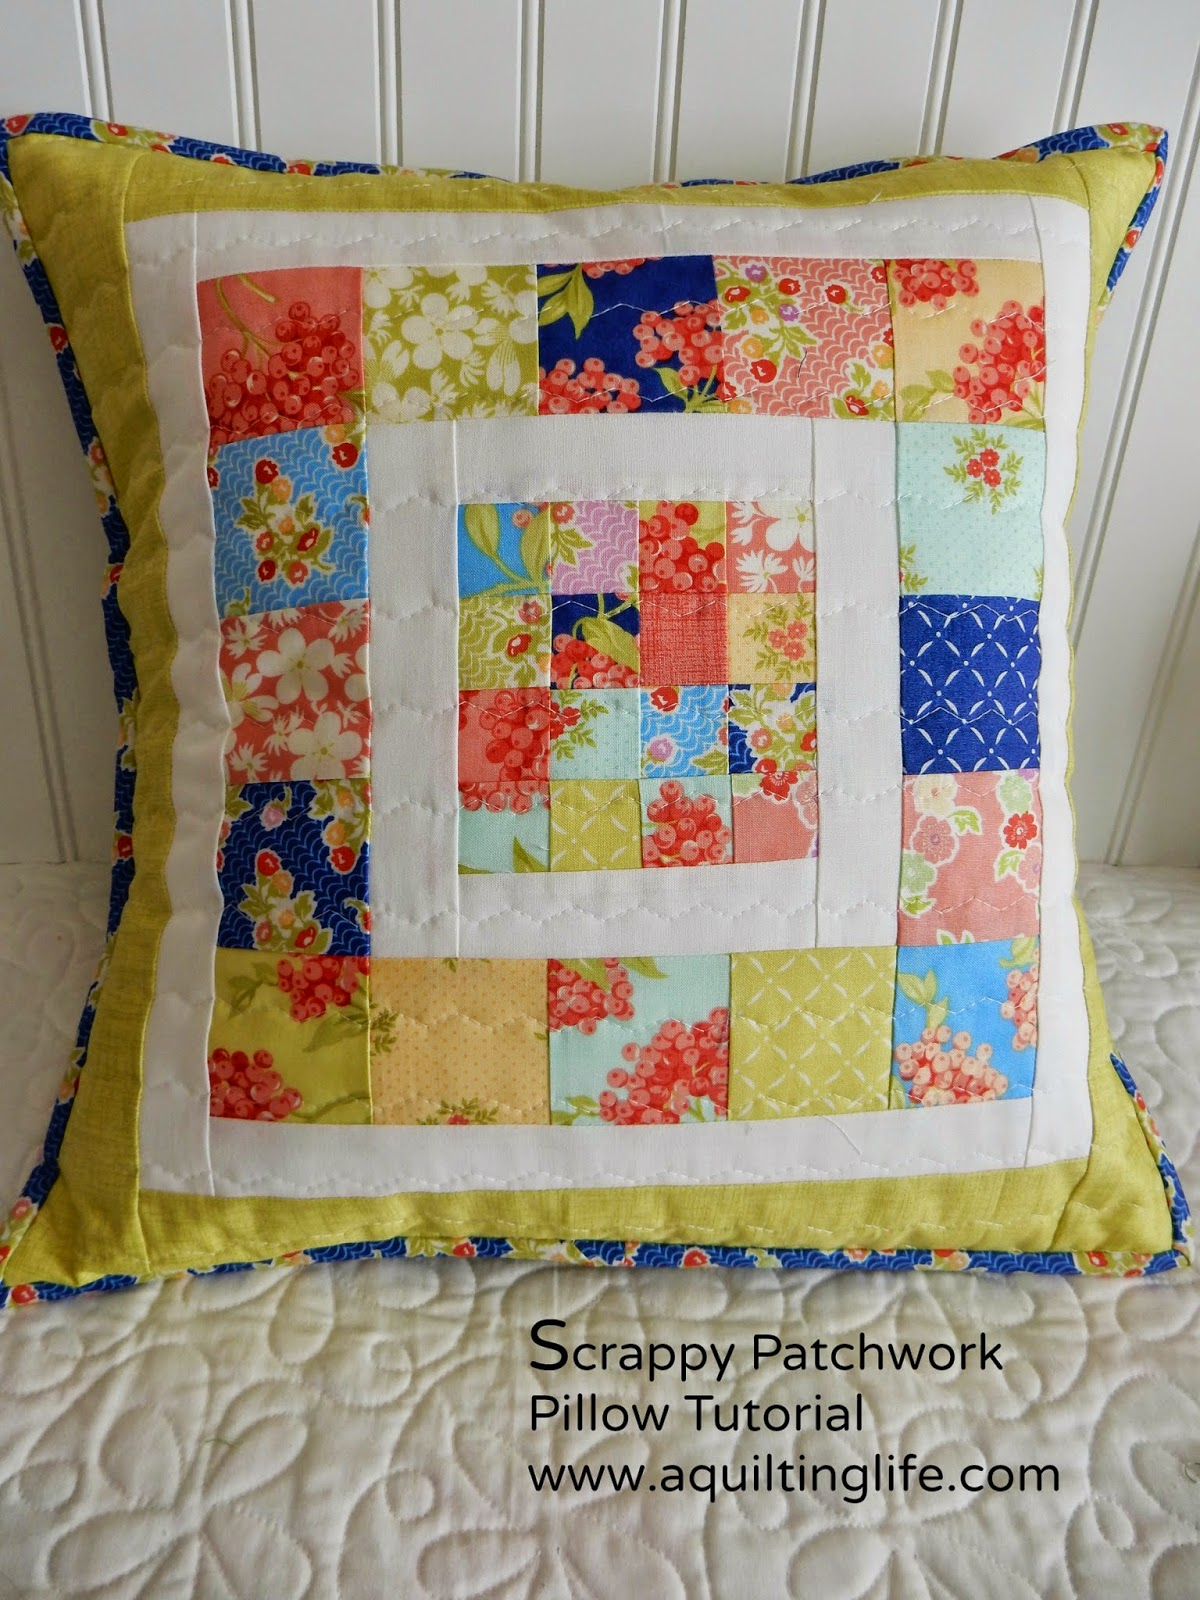 Scrappy Patchwork Pillow Tutorial A Quilting Life - a quilt blog